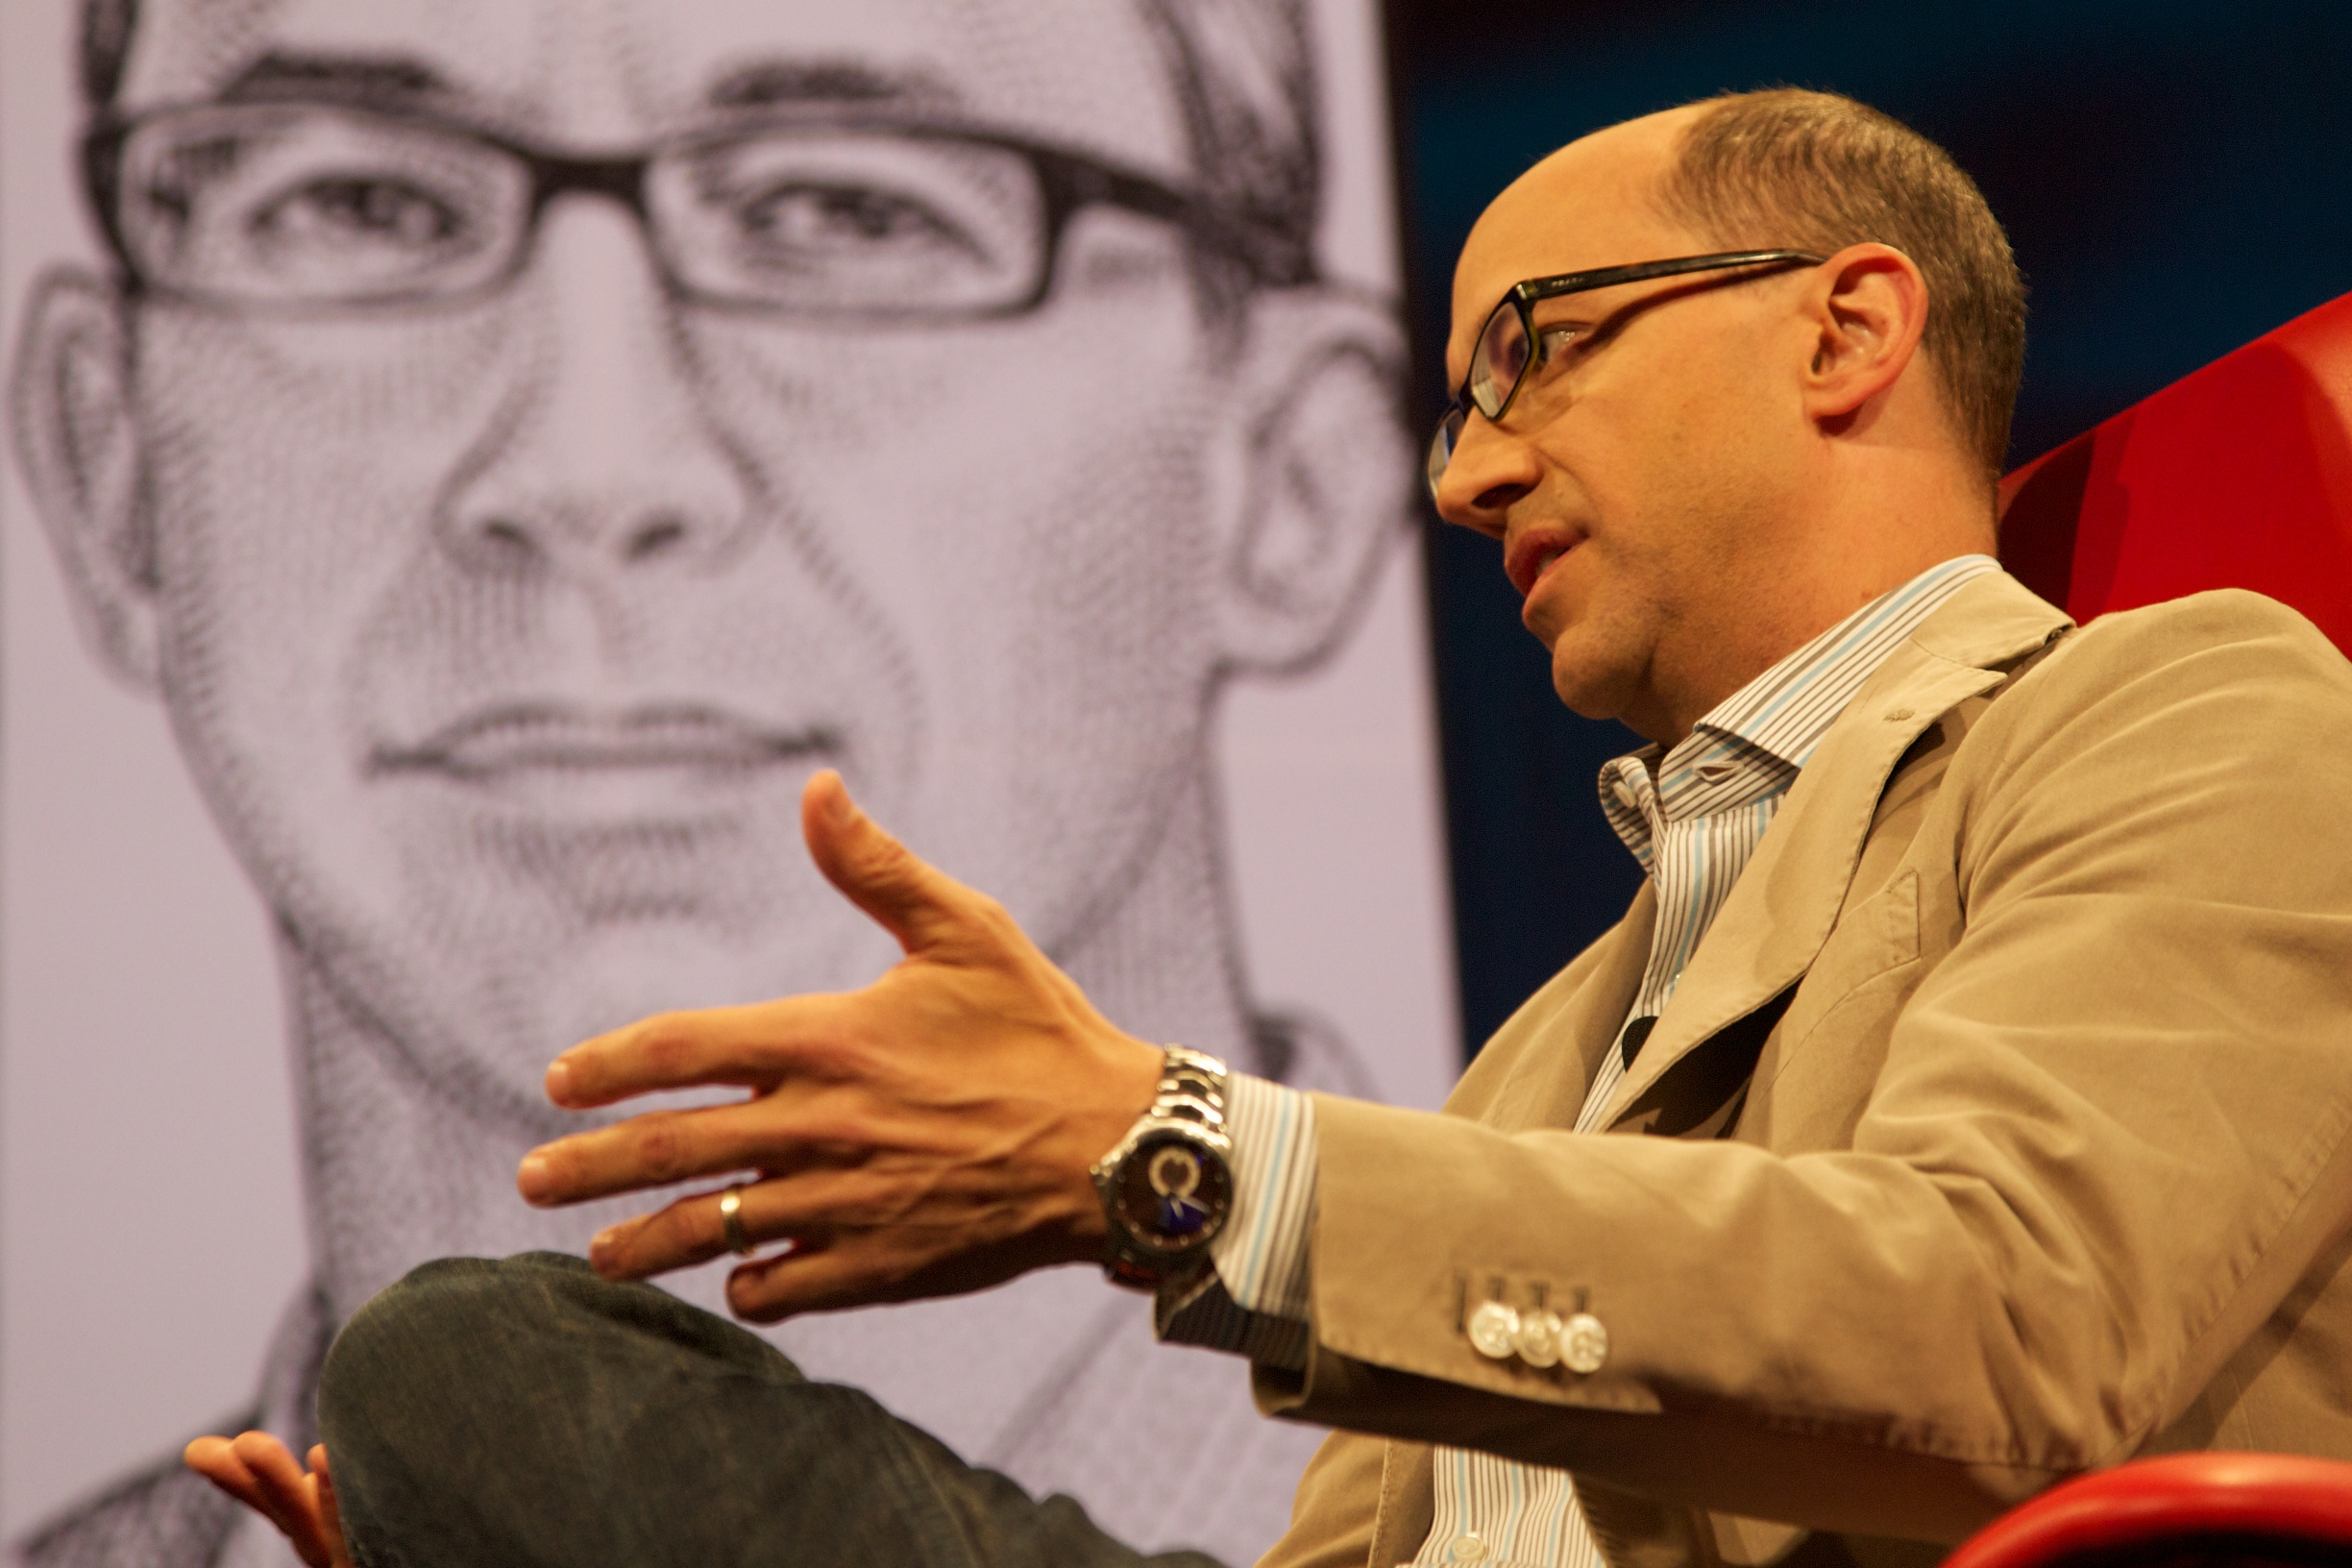 Dick Costolo of Twitter